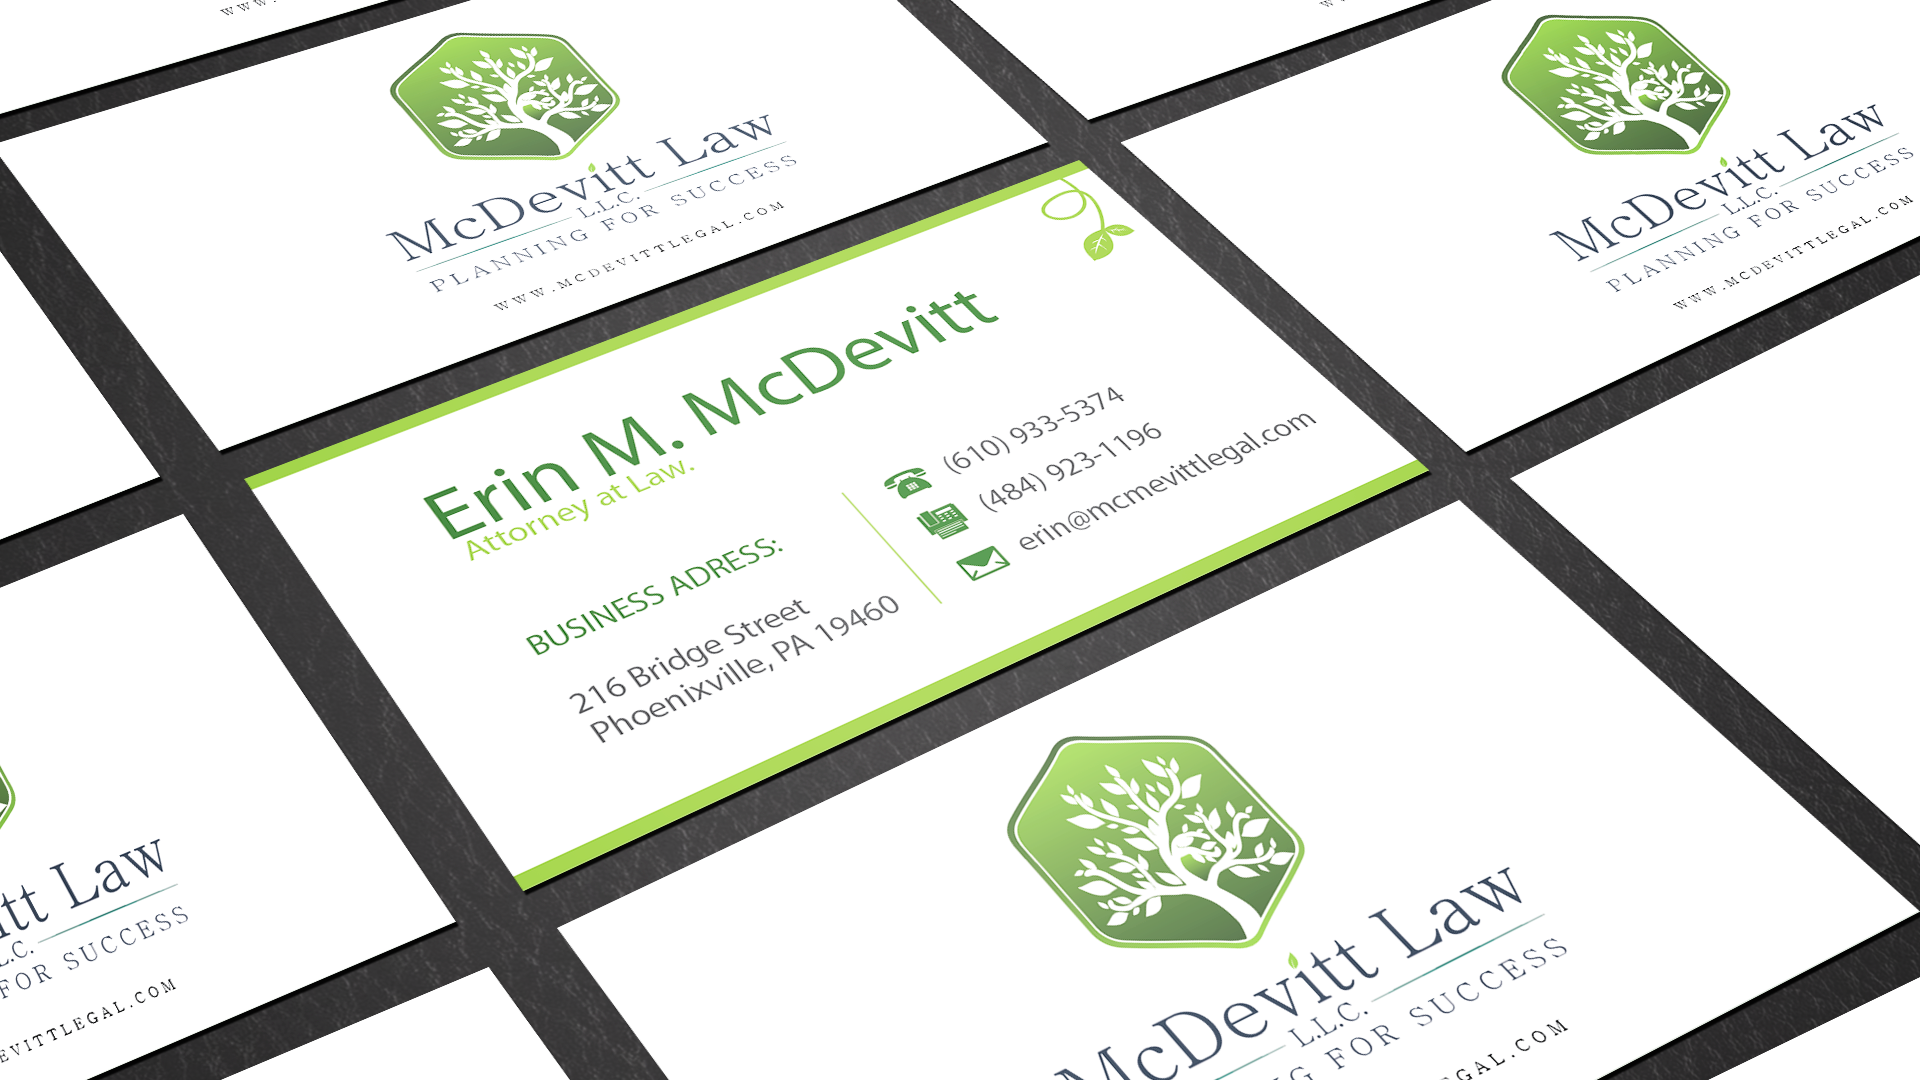 Your help is required for a new logo and business card